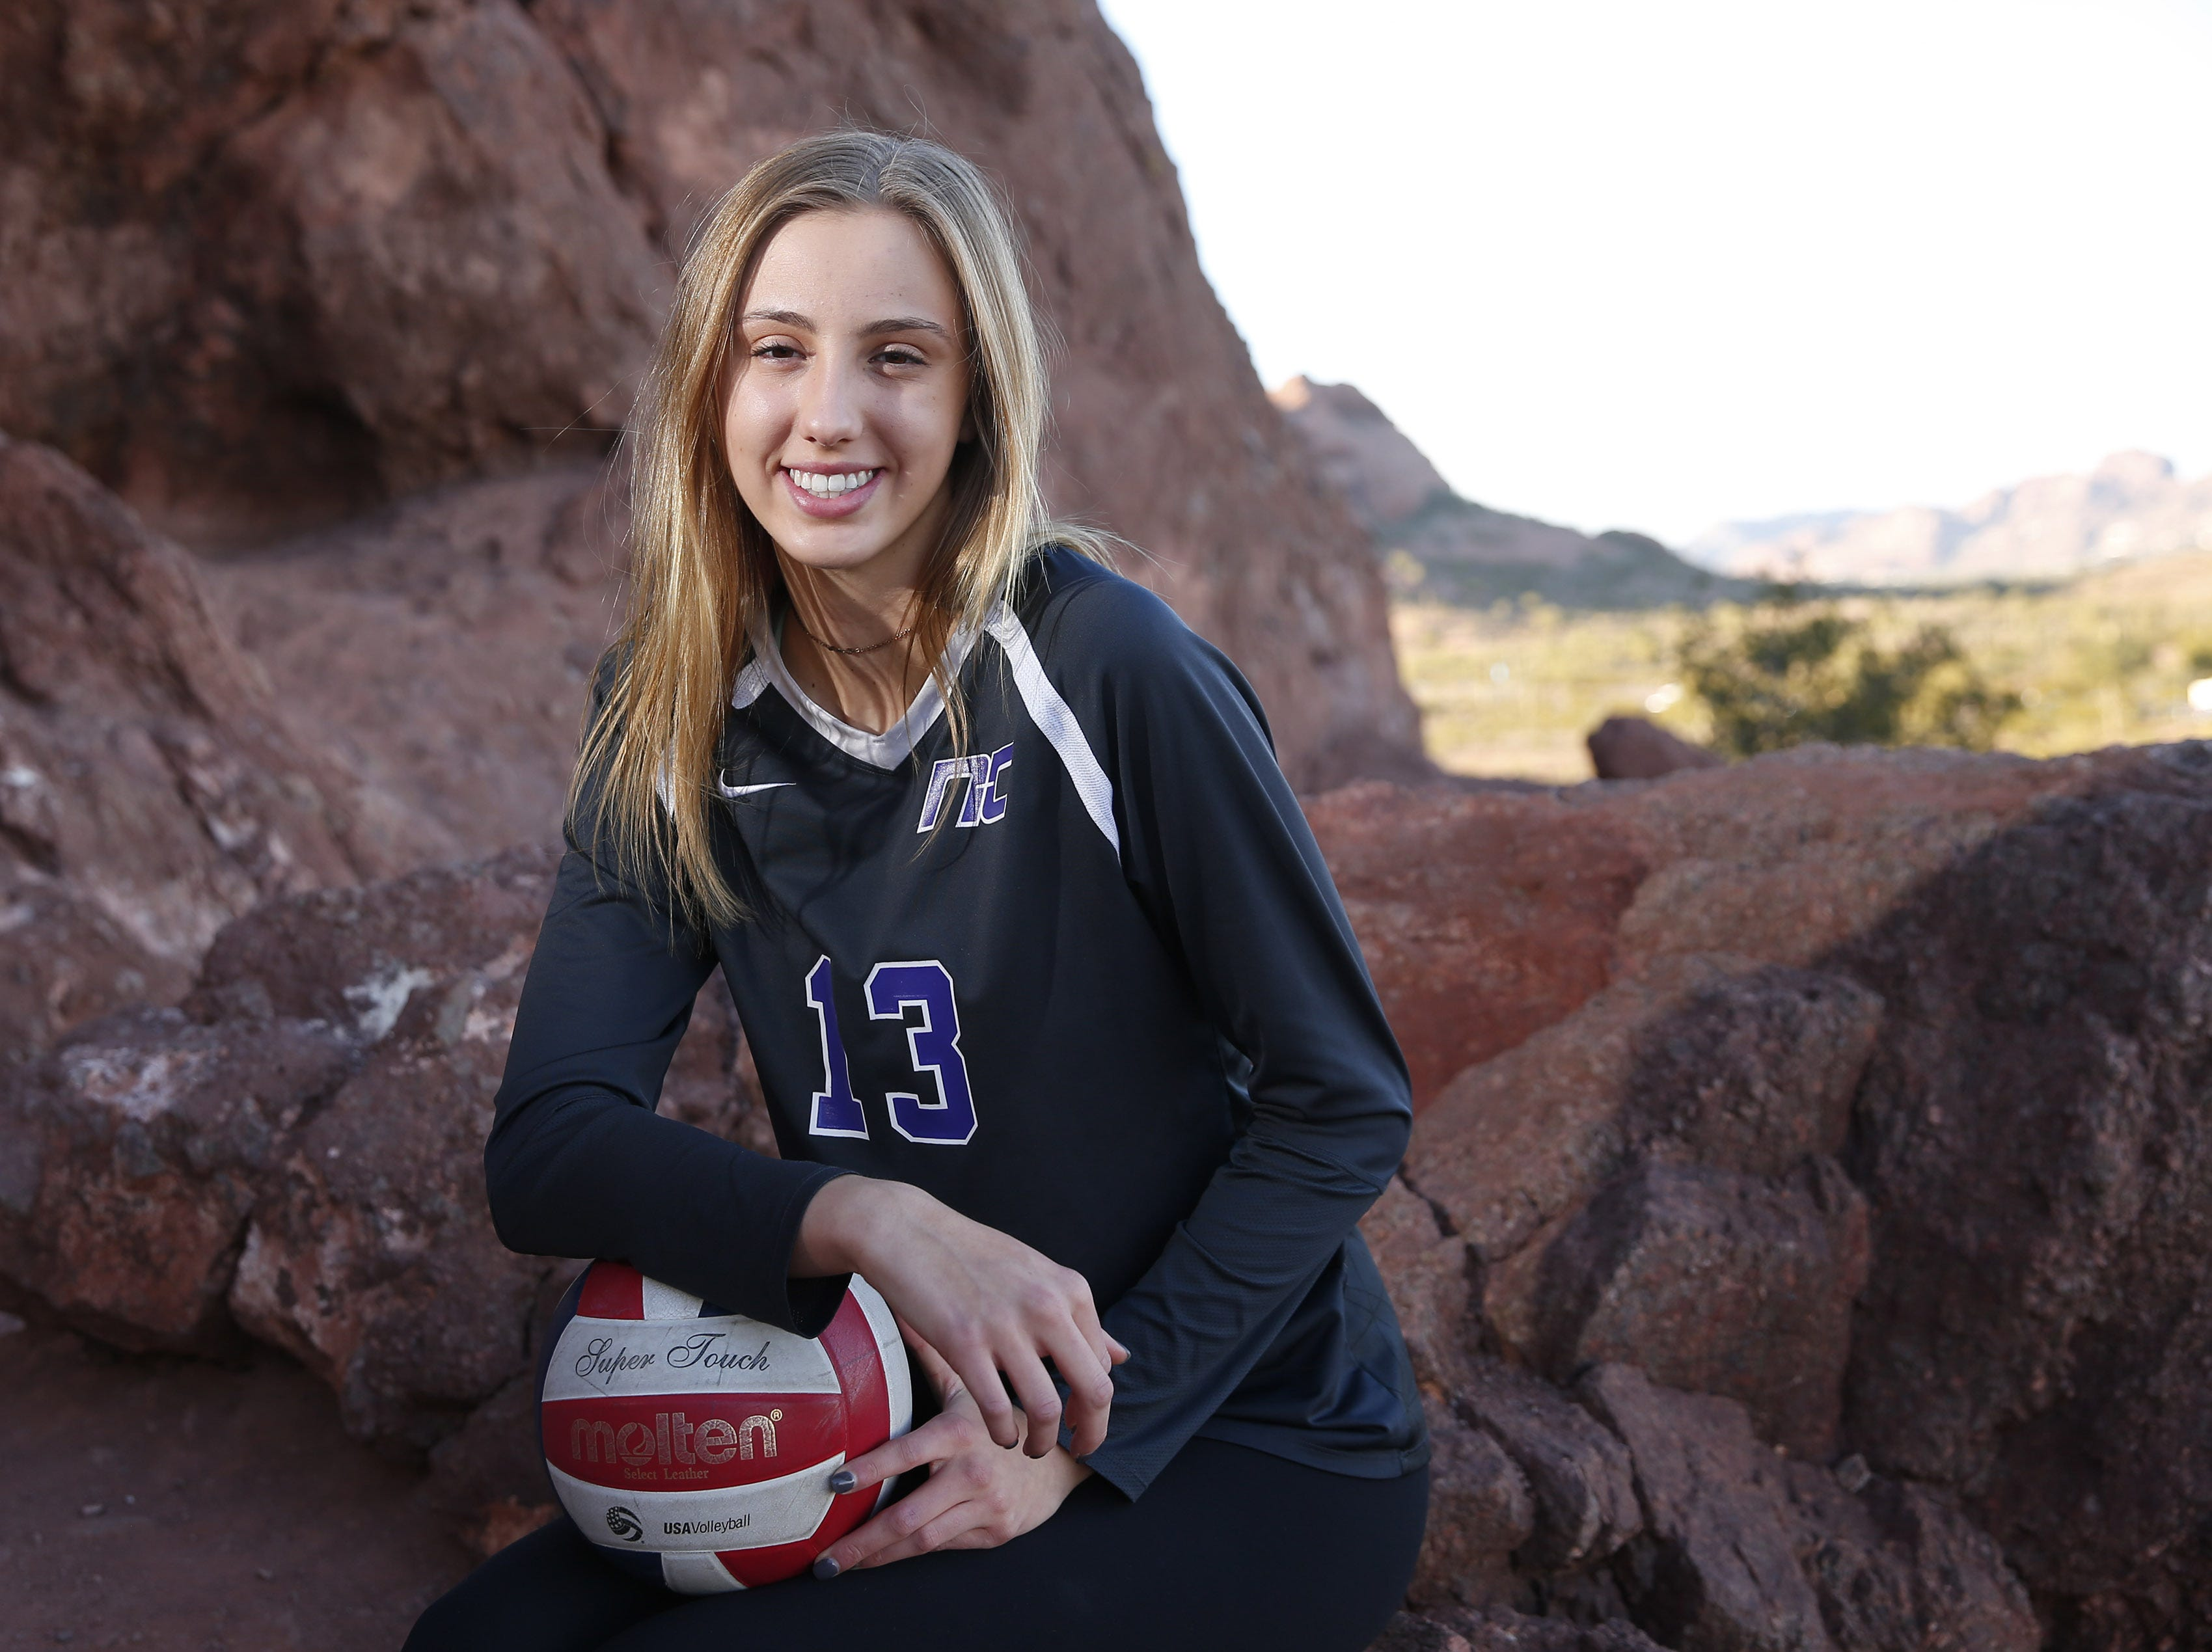 Reagan Hope of Northwest Christian is a finalist for the azcentral Sports Awards Girls High School Volleyball of the Year. #azcsportsawards